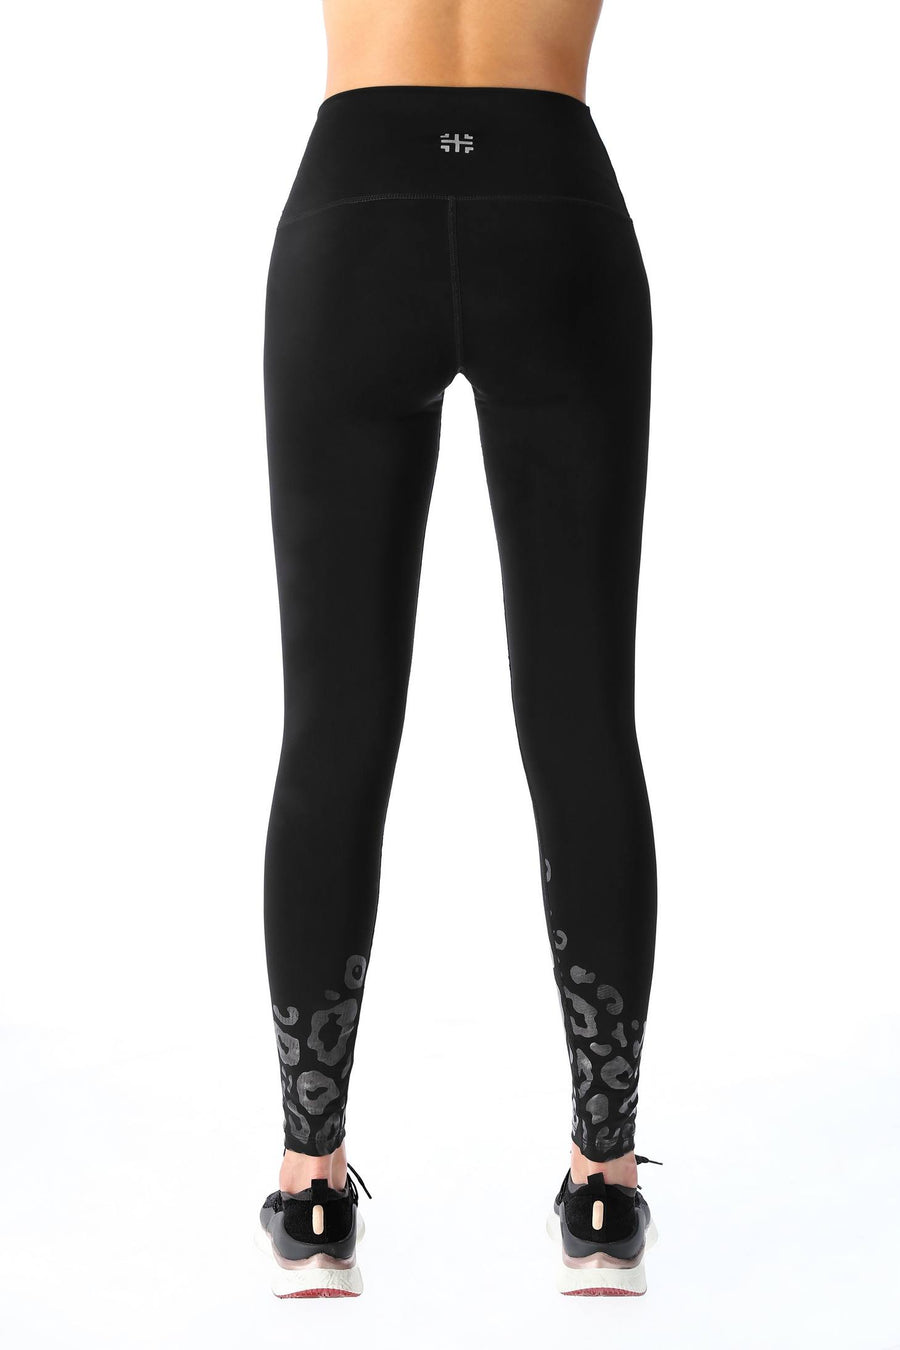 Leggings Black cheetah